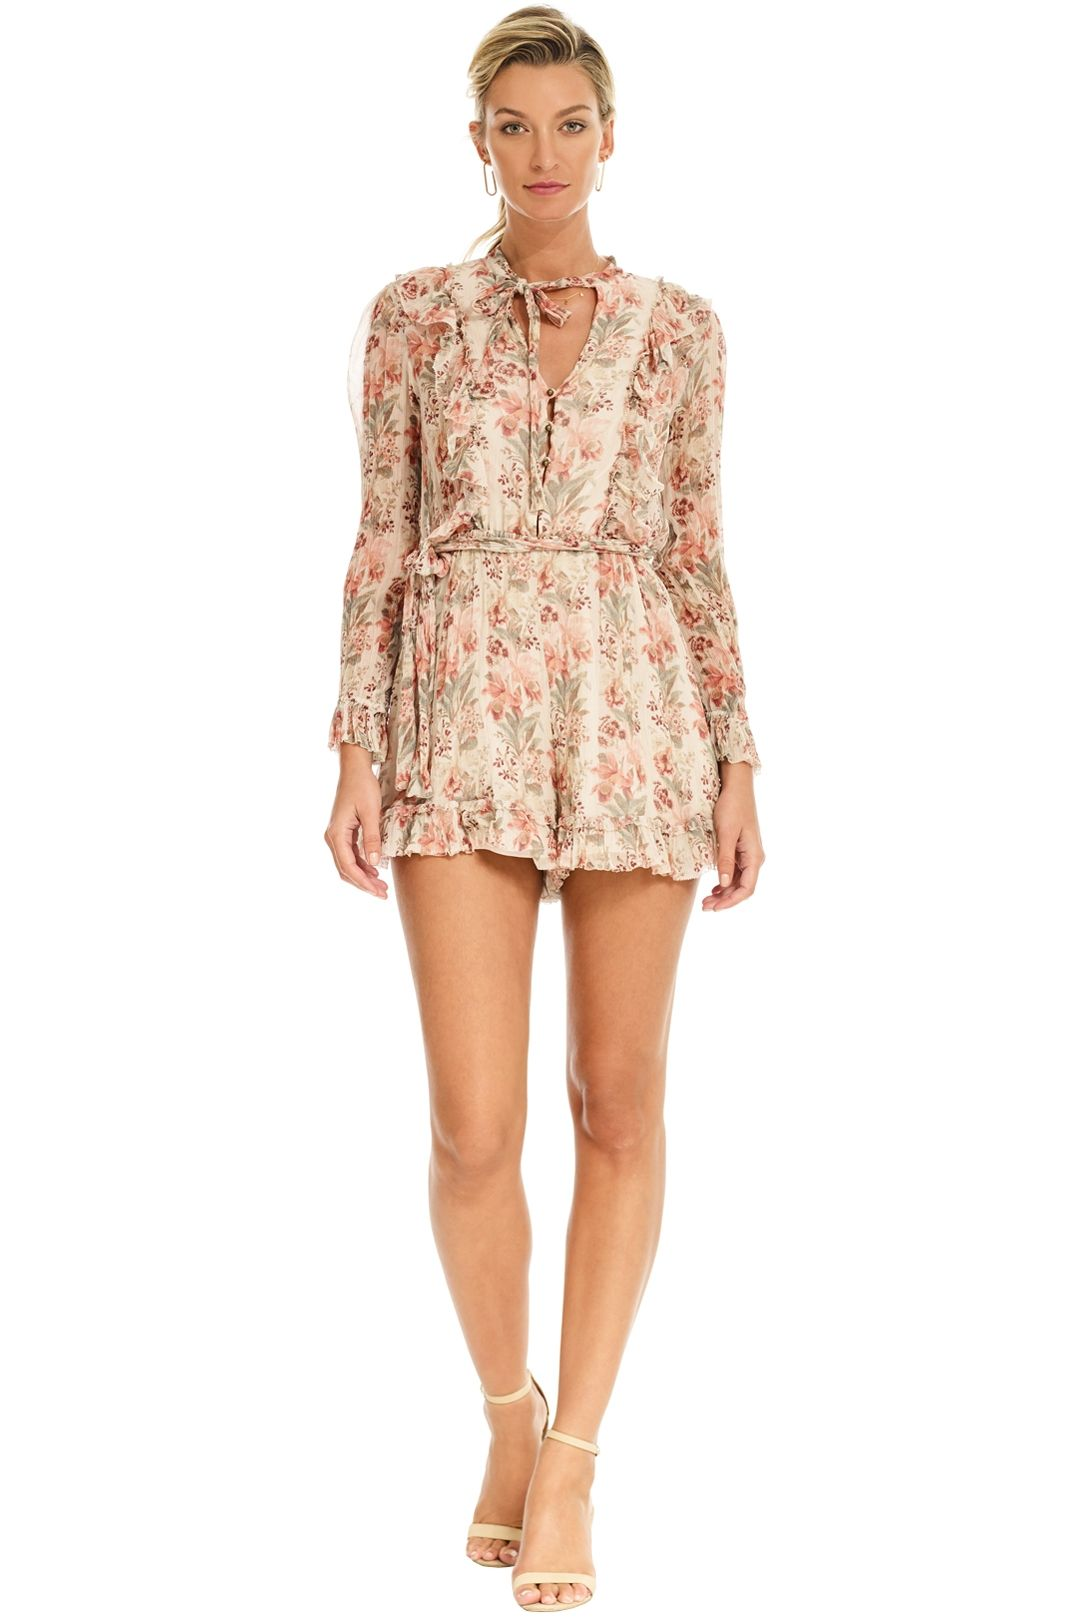 Zimmermann - Folly Neck Tie Playsuit - Cream Floral - Front